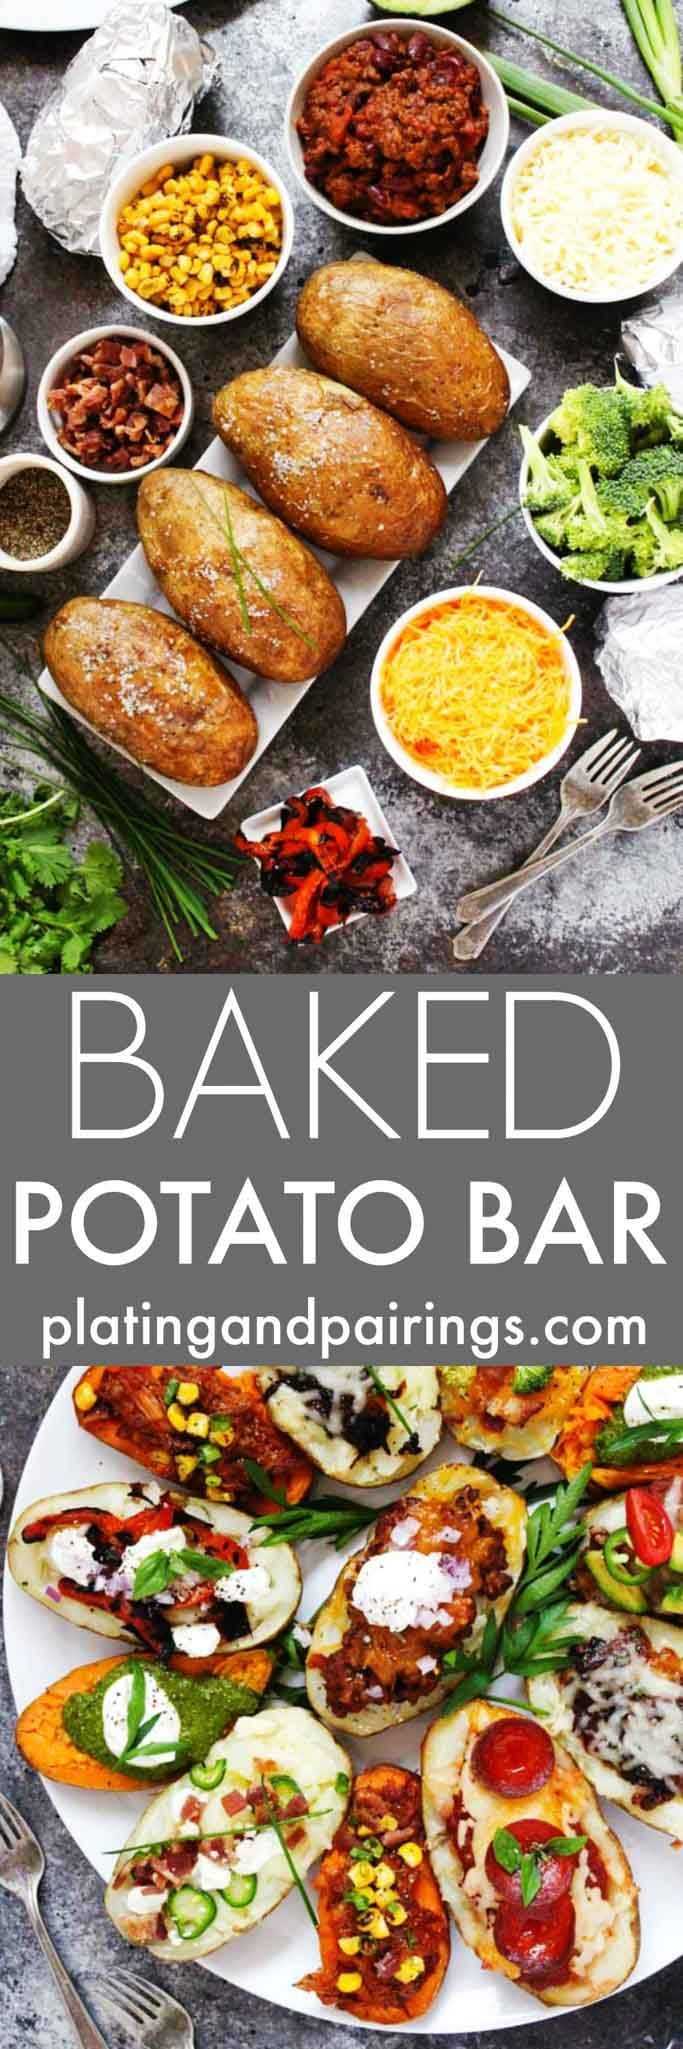 http://www.keeshndb.com/ Create a Grilled Baked Potato Bar for your next party, potluck or tailgating event. It's a fun and festive way to feed a crowd, and the topping possibilities are endless. | platingsanpdairin... #keeshndb @foodvinerecipes, @foodfinderdiaryhttp://www.platingsandpairings.com/grilled-baked-potato-bar/